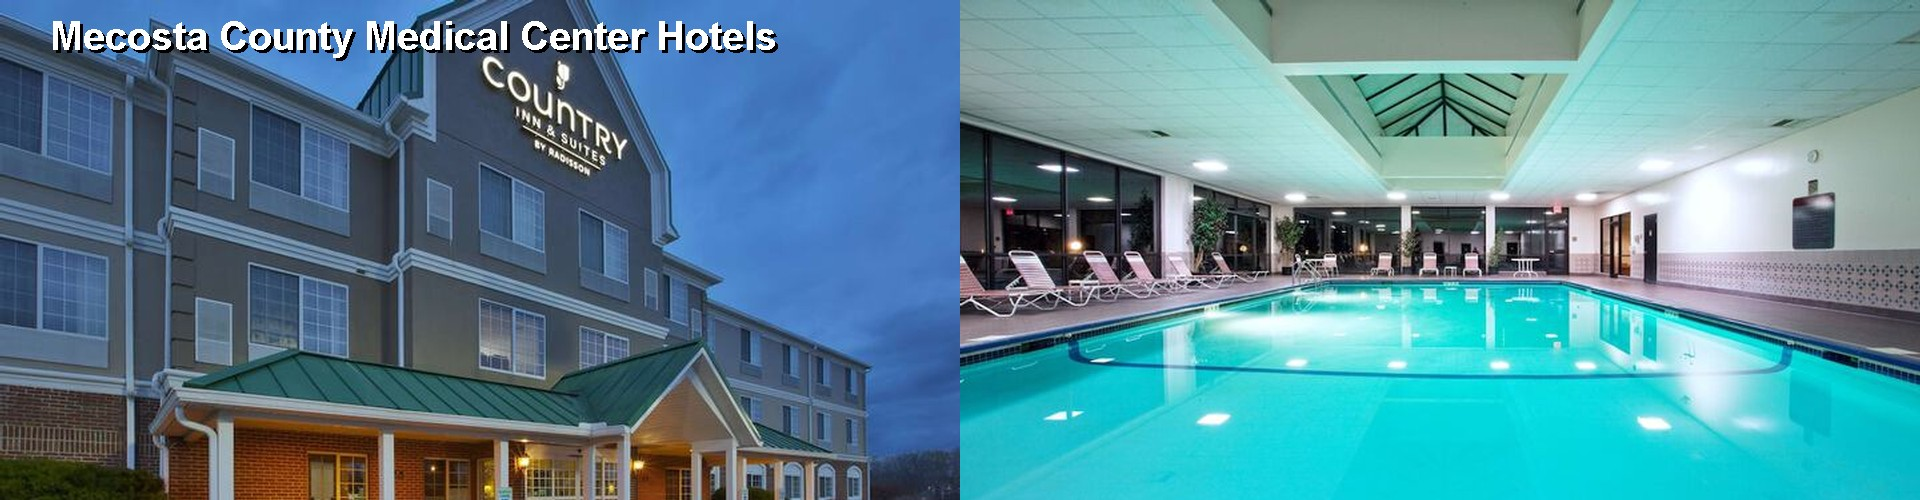 5 Best Hotels near Mecosta County Medical Center